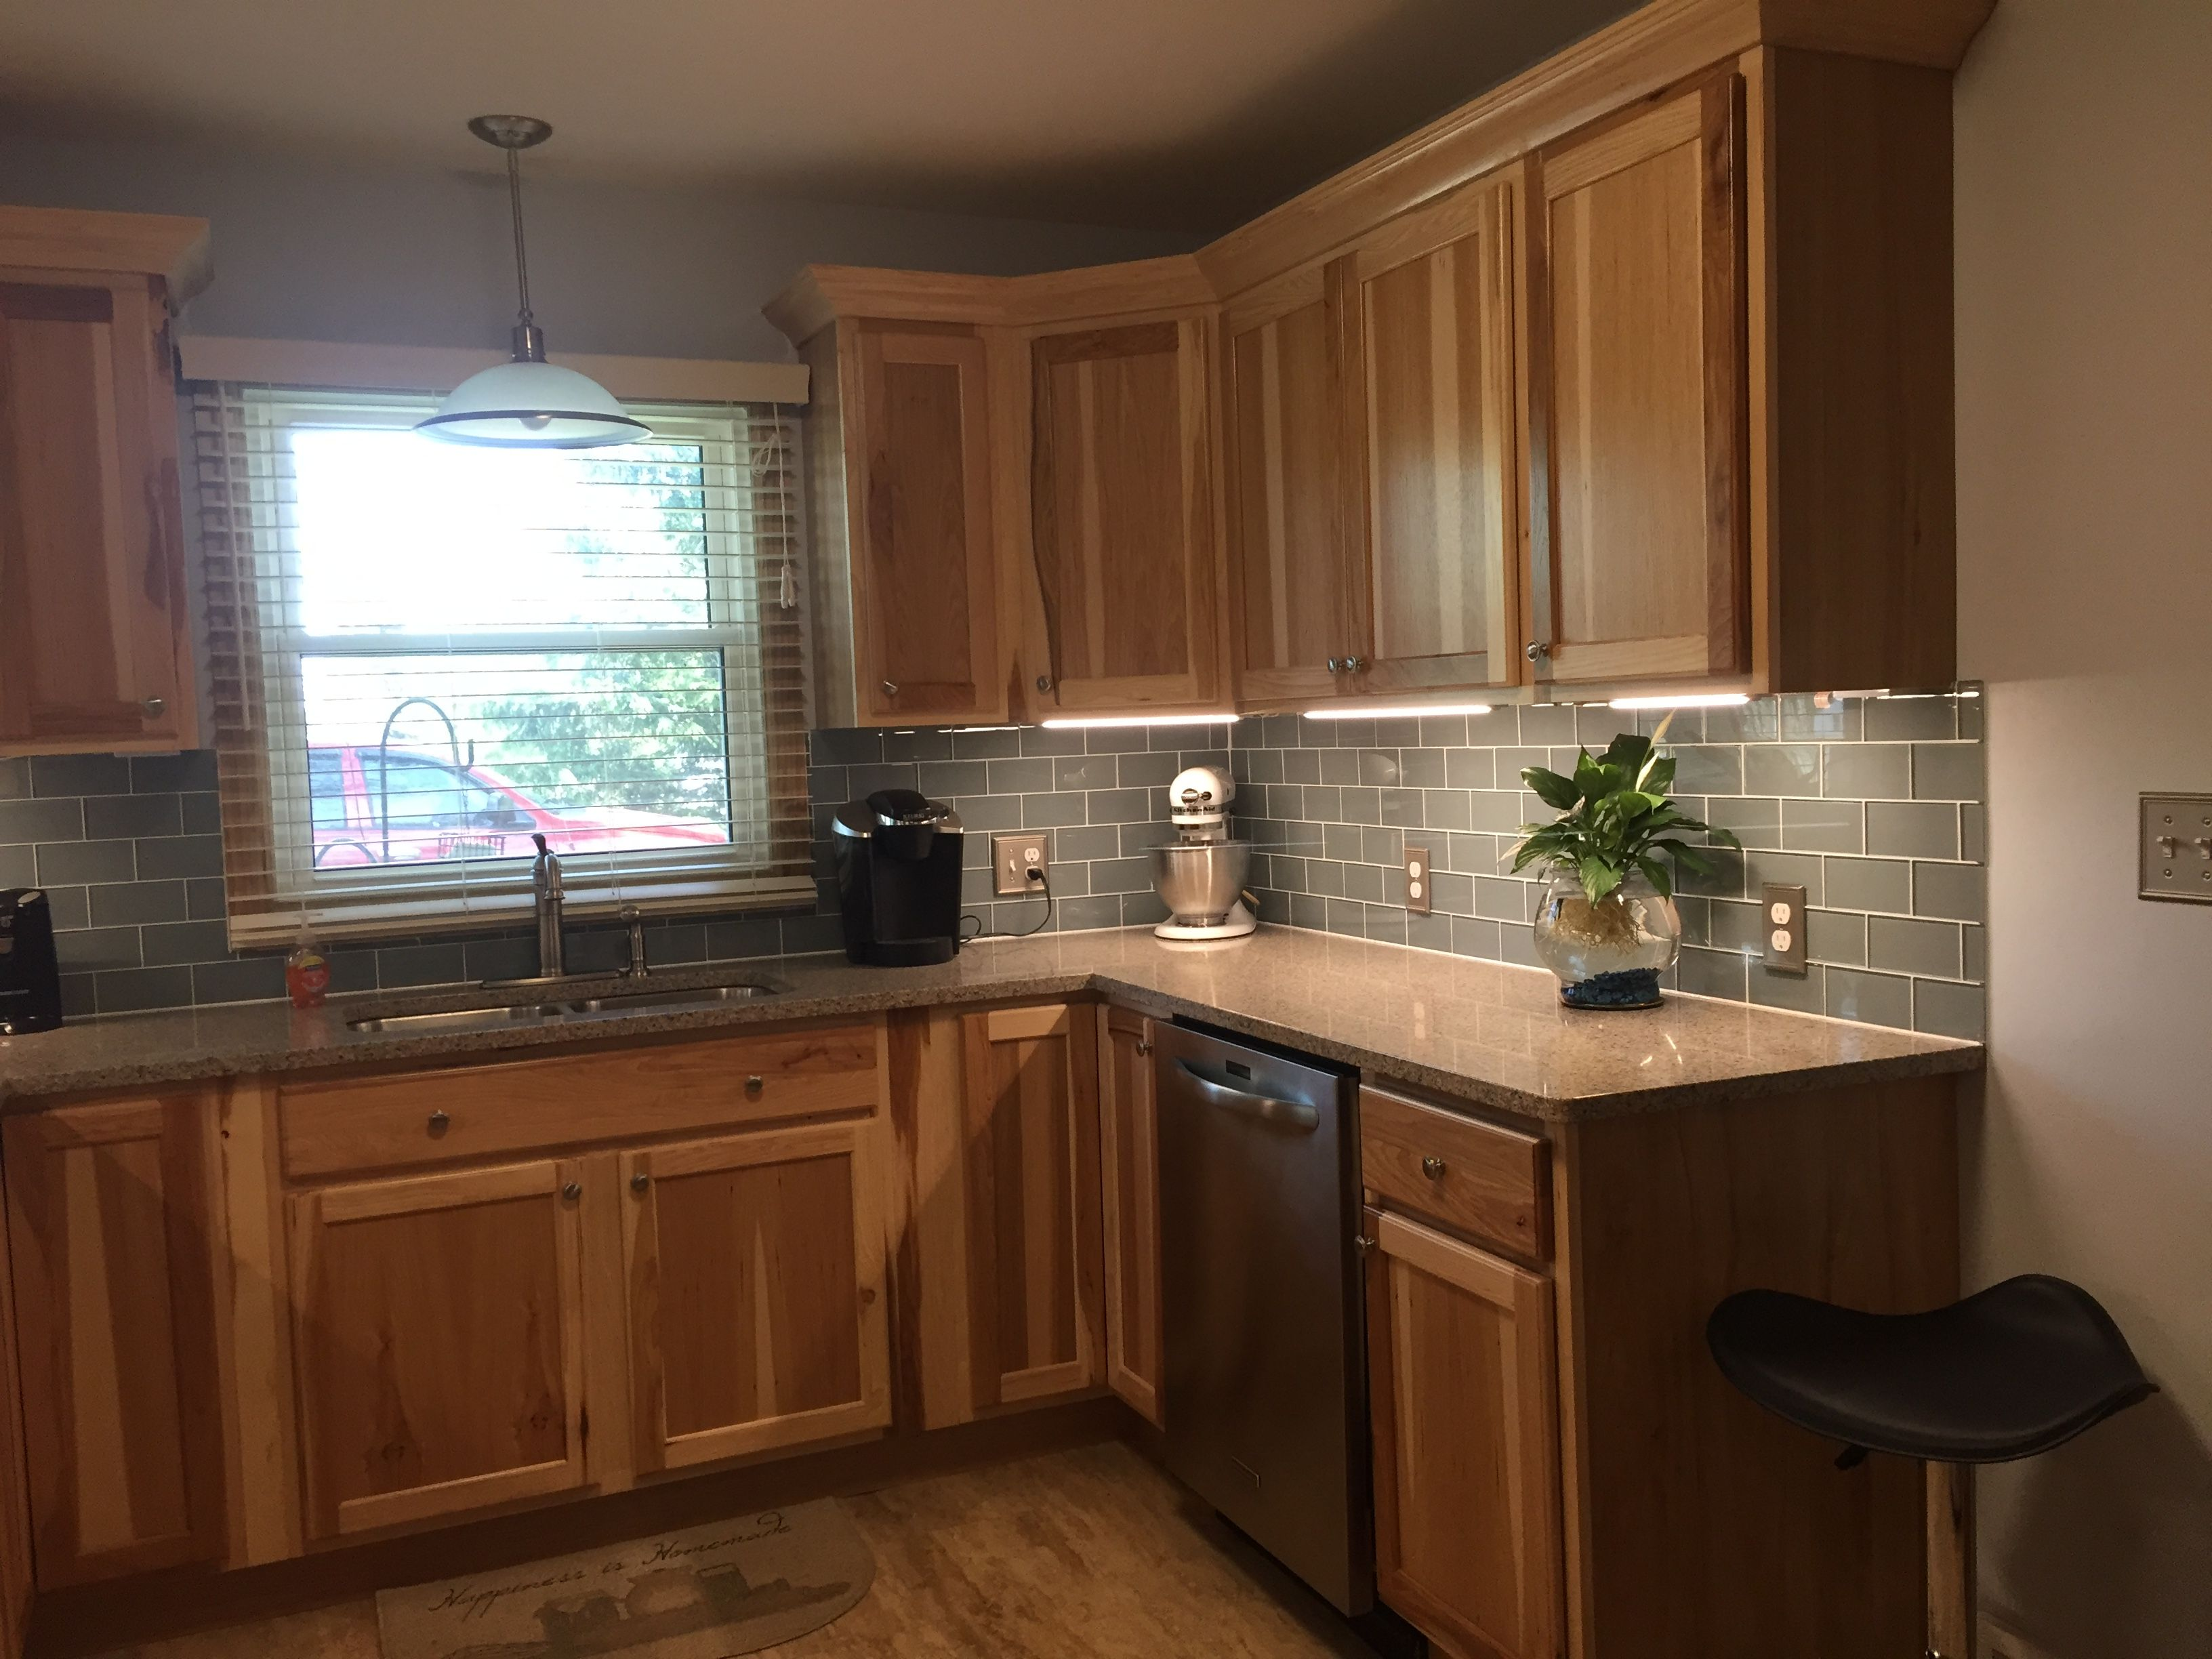 Kitchen Remodel With Hickory Cabinets Quartz Counter Top And Glass Backsplash Cheap Kitchen Remodel Inexpensive Kitchen Remodel Simple Kitchen Remodel